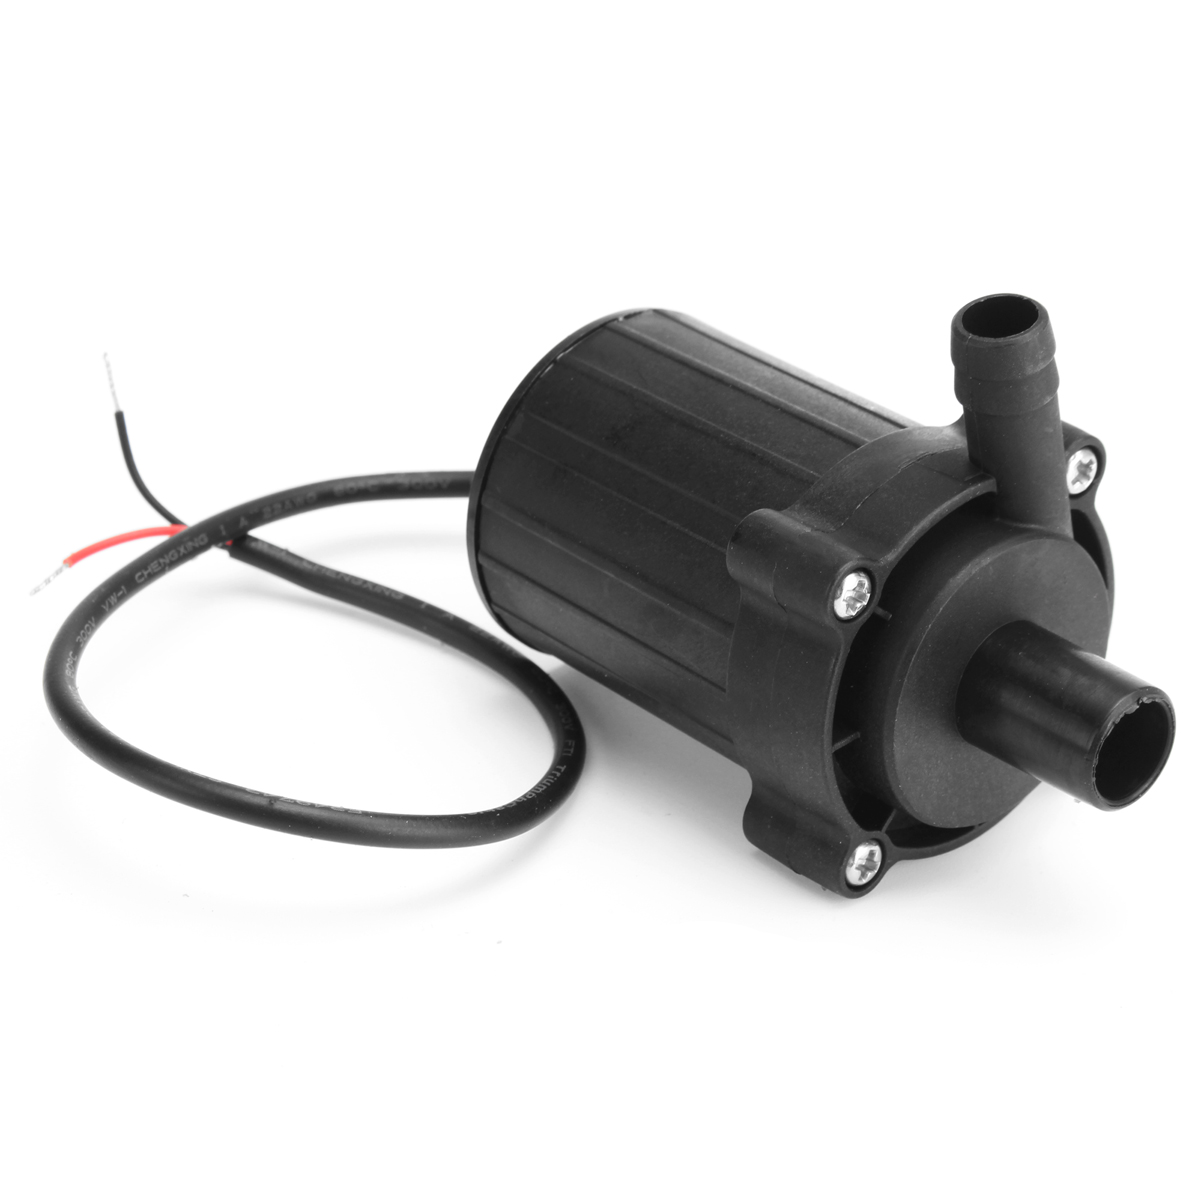 DC 12V Clean Water Pump Mini Booster Circulation Pump Brushless pump 8L/min